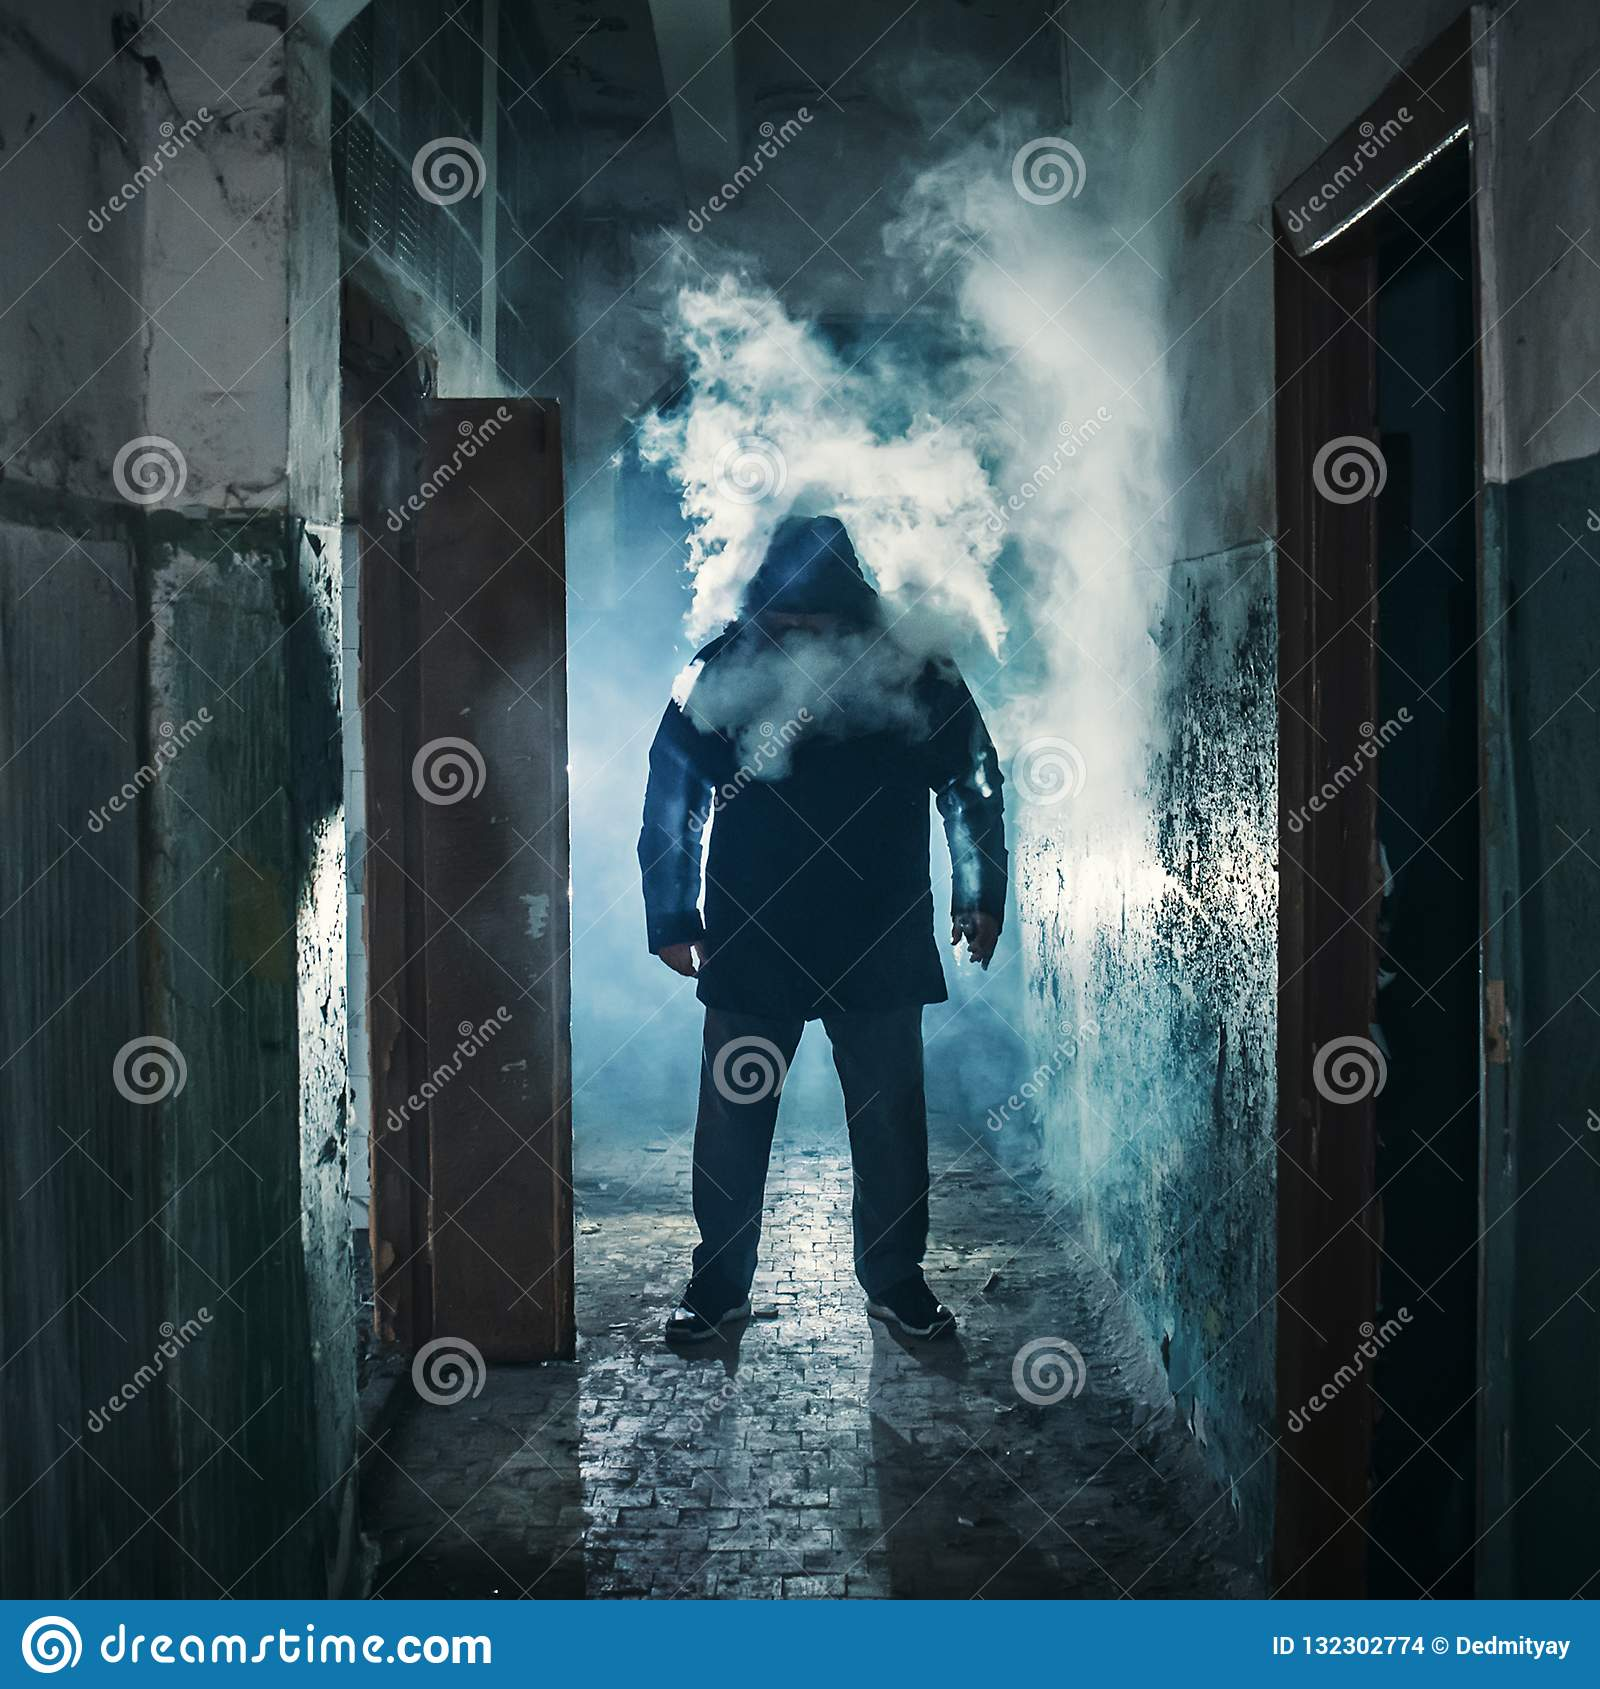 Silhouette of man in dark creepy corridor in clouds of vape steam or vapor smoke, mystery horror atmosphere